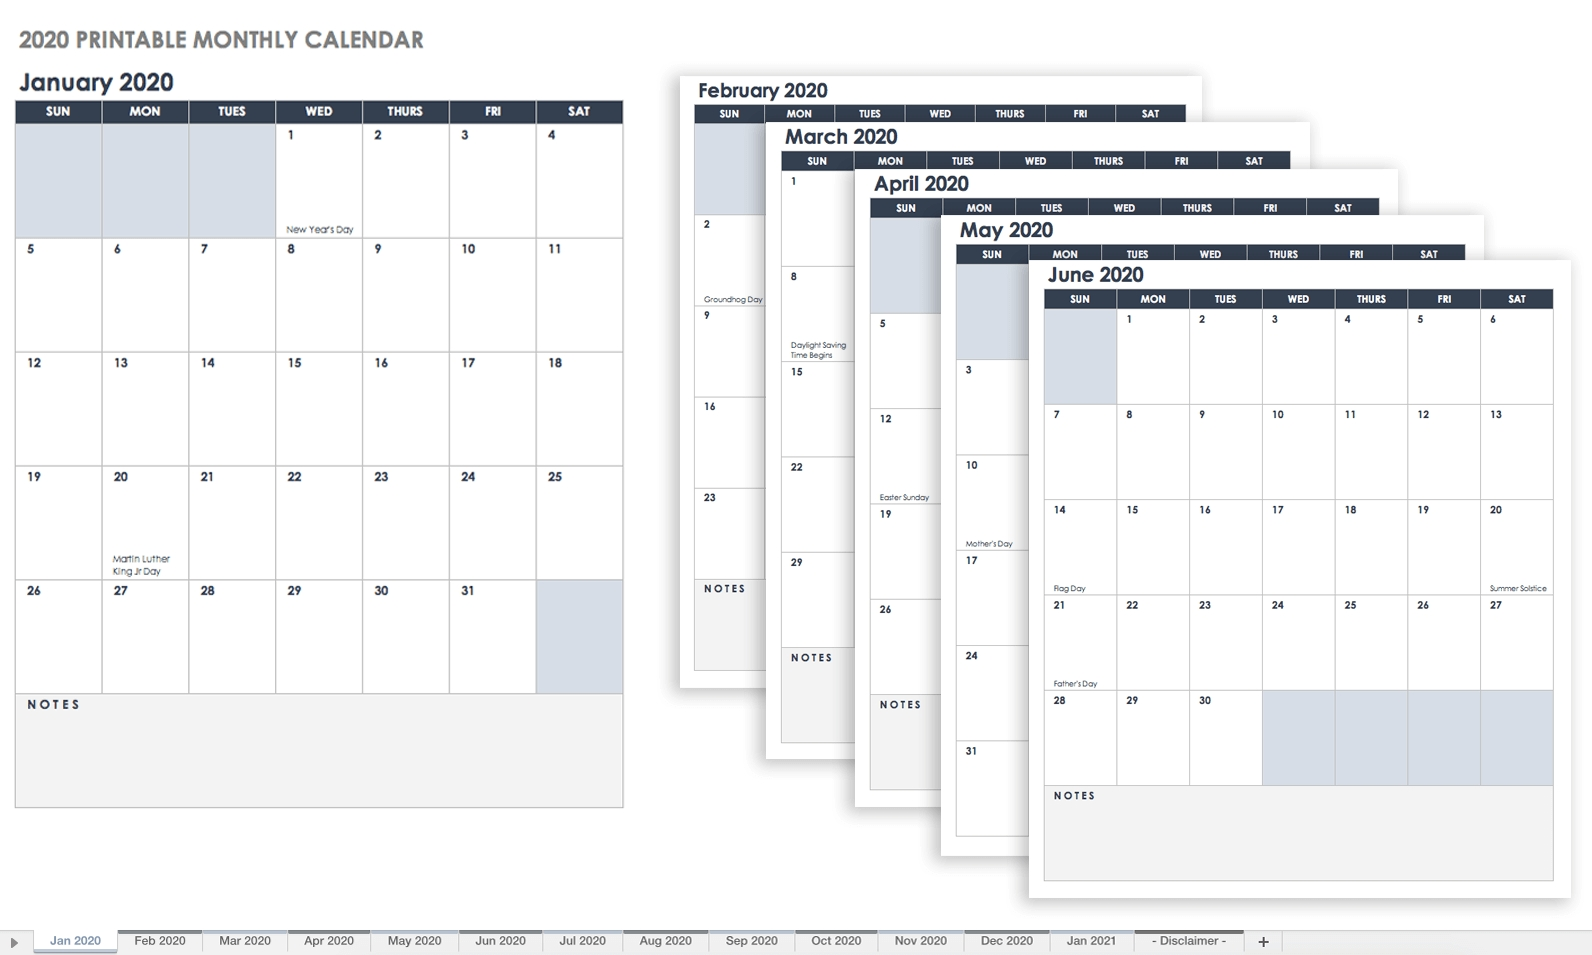 Free Blank Calendar Templates - Smartsheet intended for Blank Calendar Mon Through Fri With No Dates Or Month